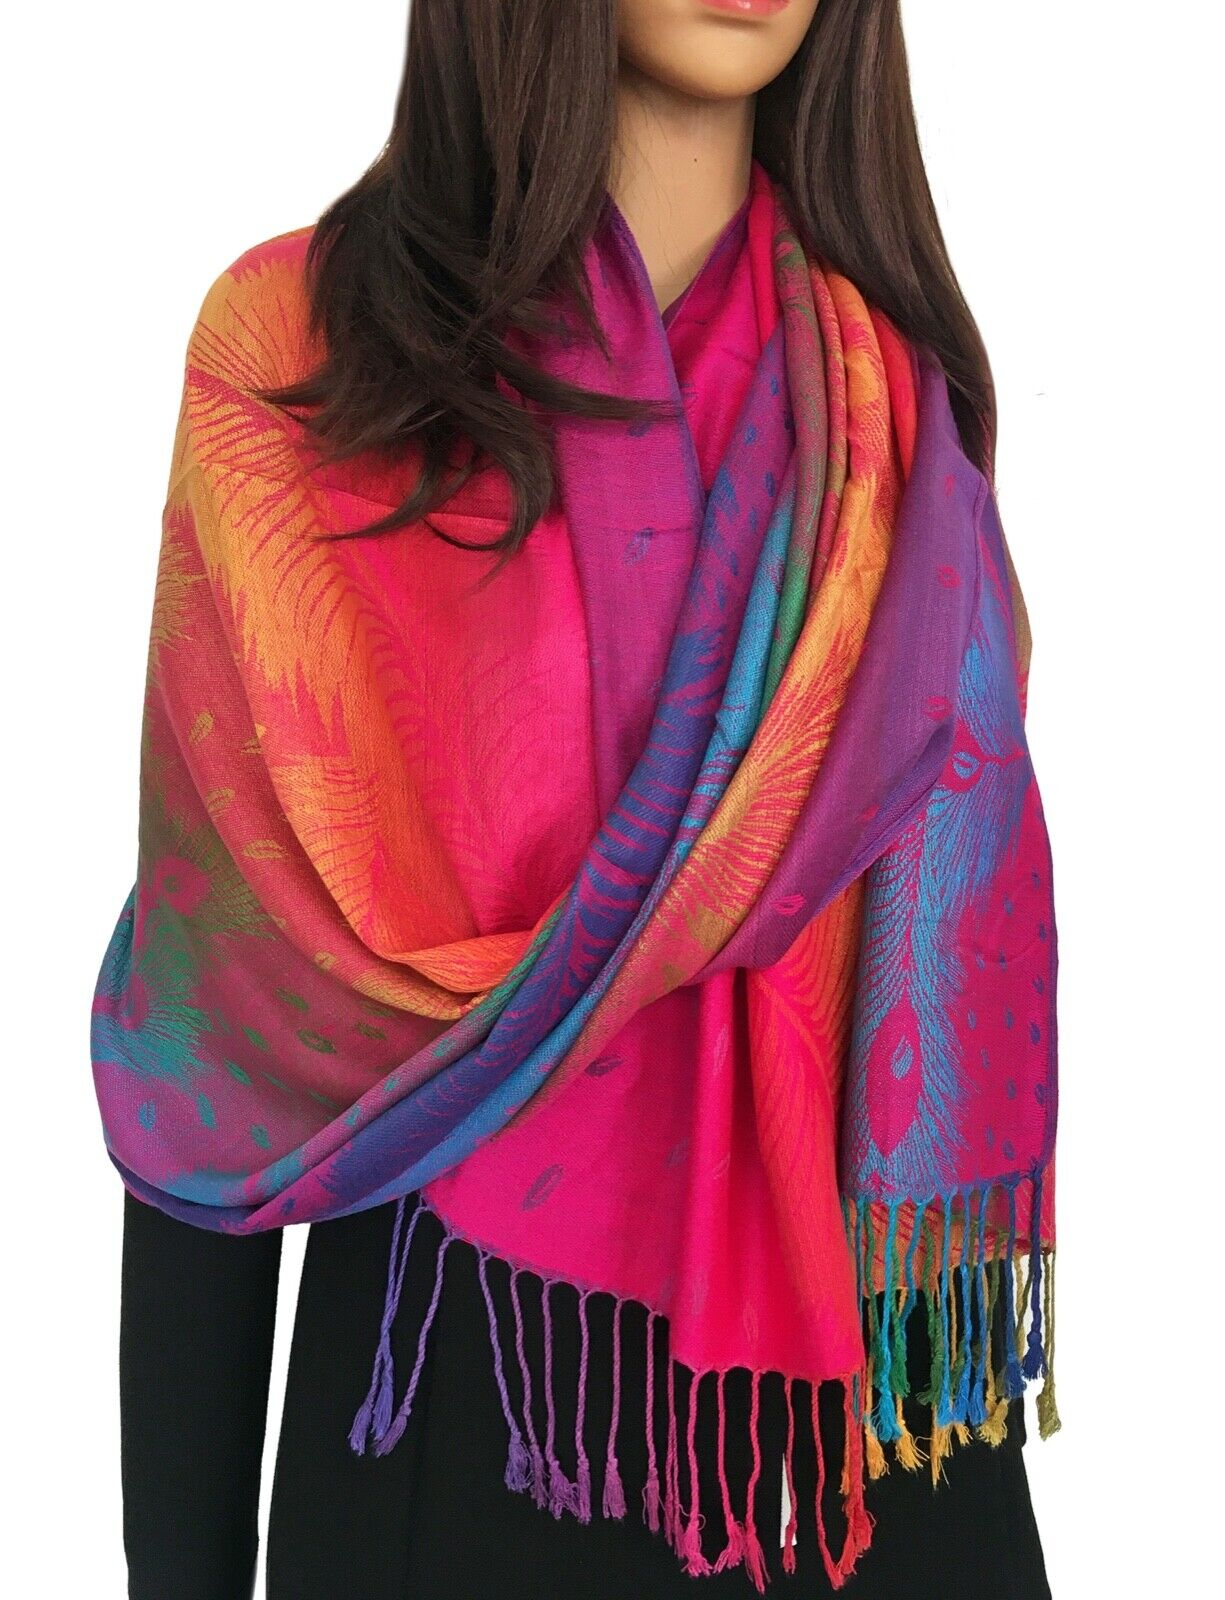 Hot Pink Feather Floral Peacock Scarf Bright Rainbow Multi Colour Pashmina Shawl